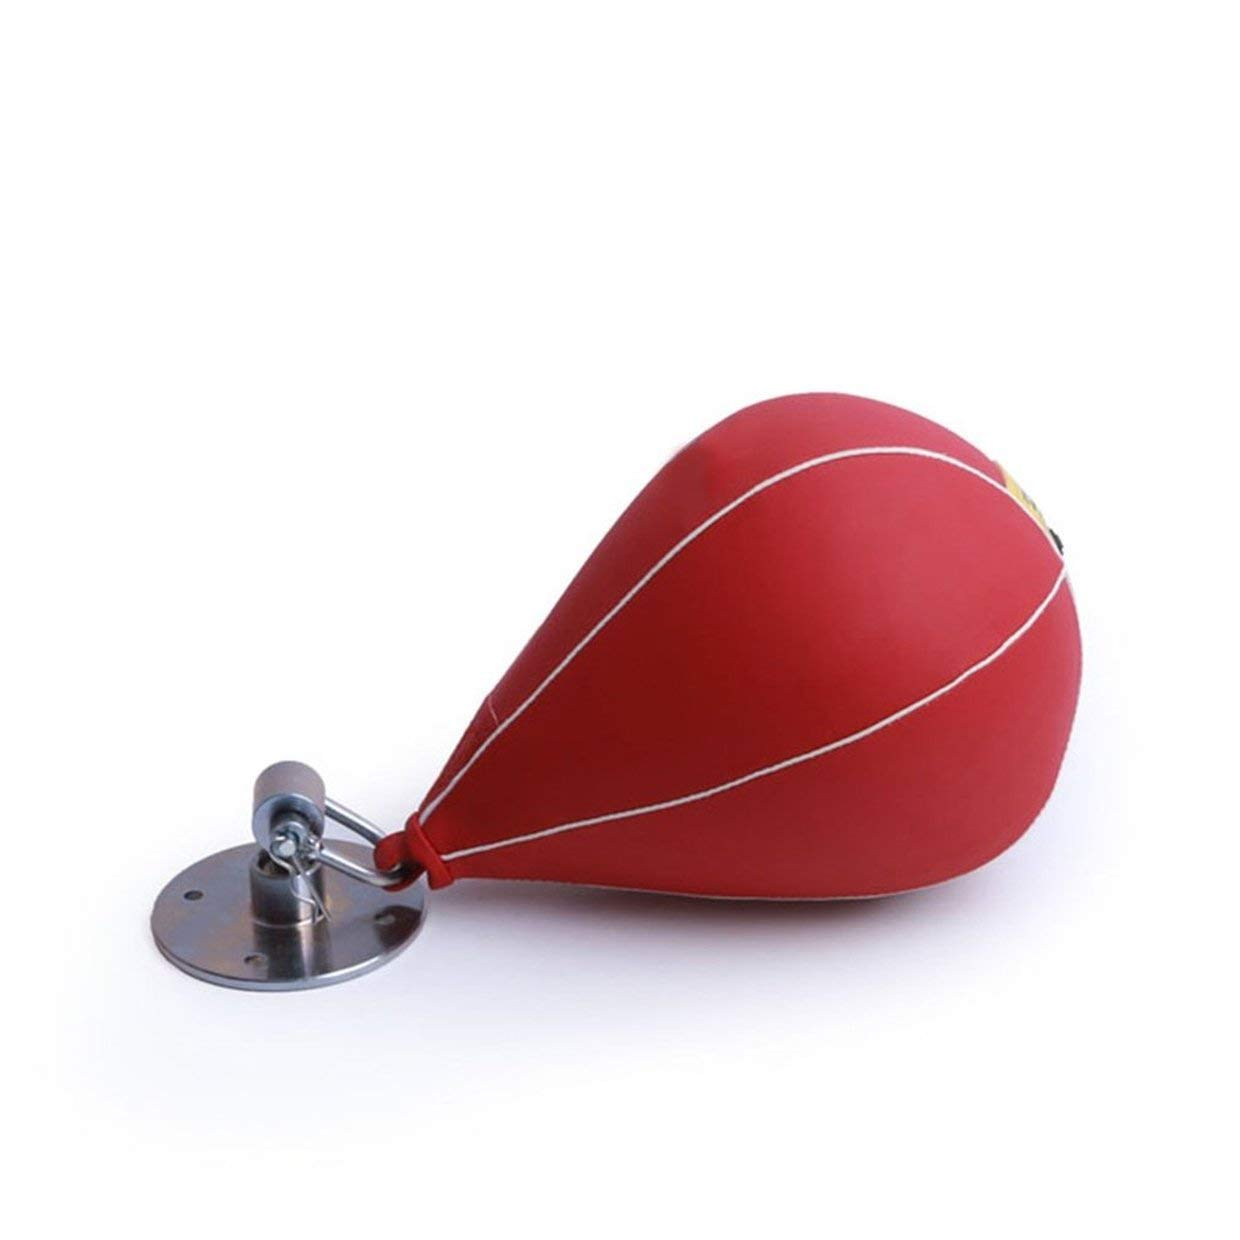 Qewmsg Speed Punching Ball Swivel Special For Mount Sandbags Hook Boxing Trainning